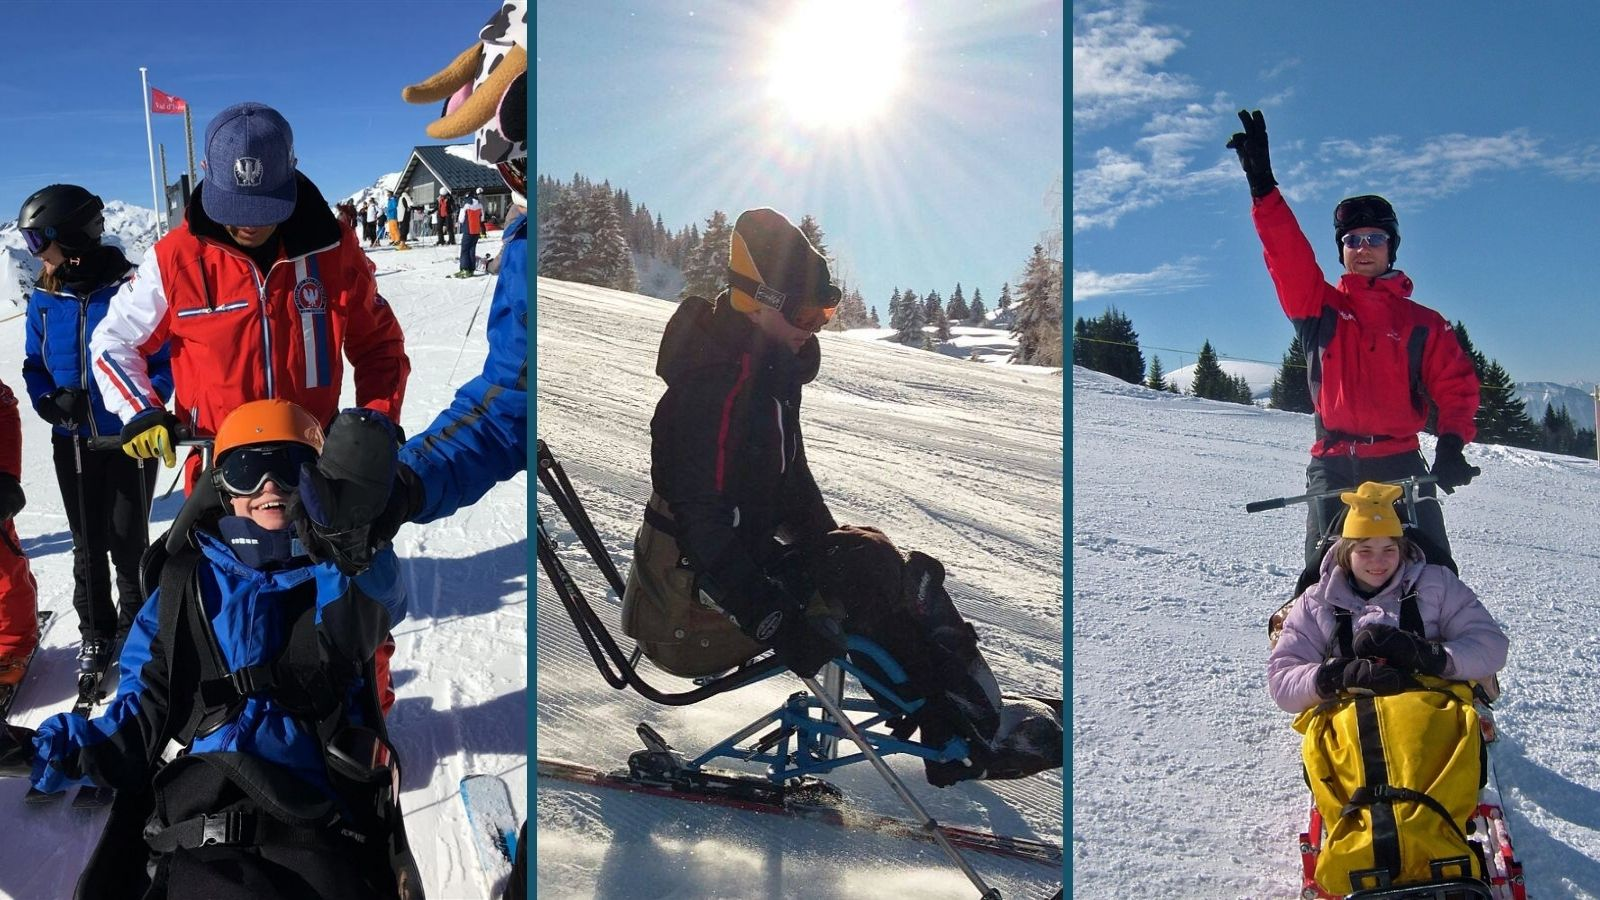 three images of Ski 2 Freedom beneficiaries enjoying their sit ski experiences with big smiles on their faces